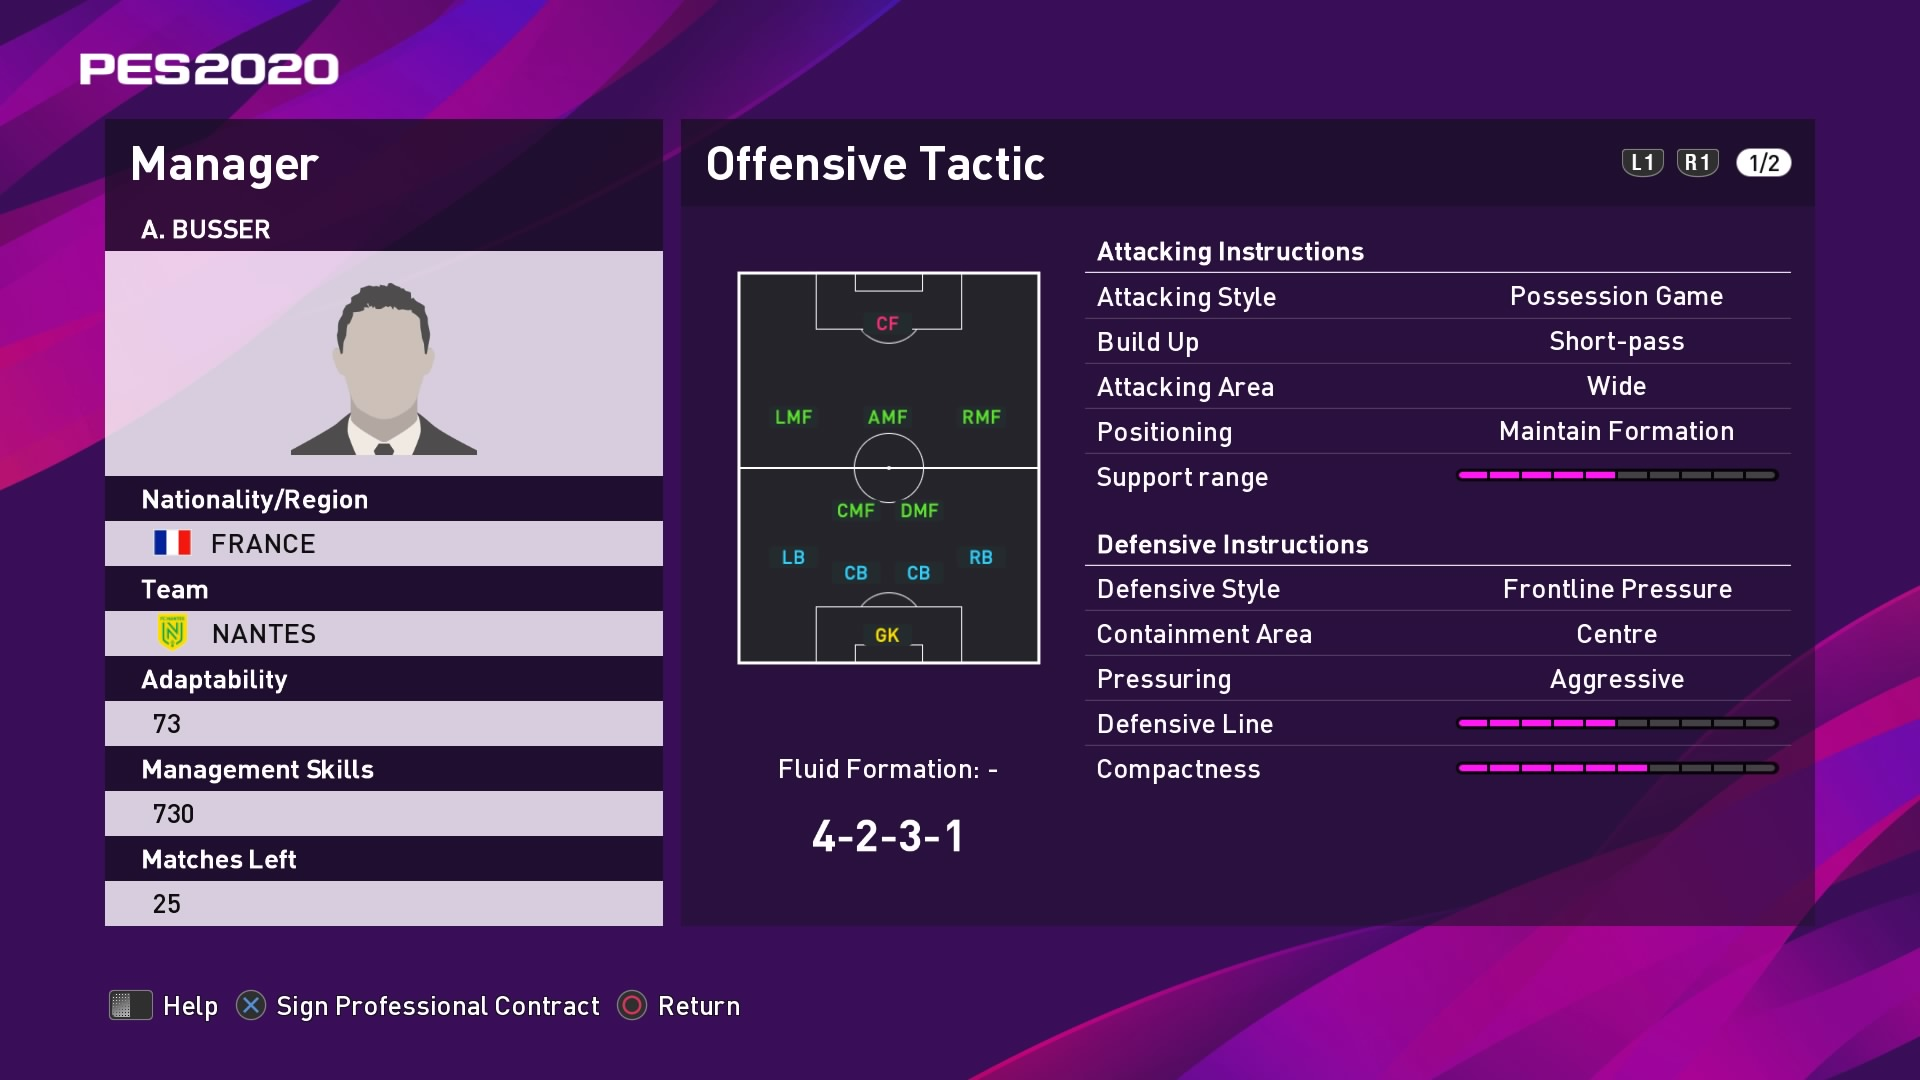 A. Busser (Christian Gourcuff) Offensive Tactic in PES 2020 myClub